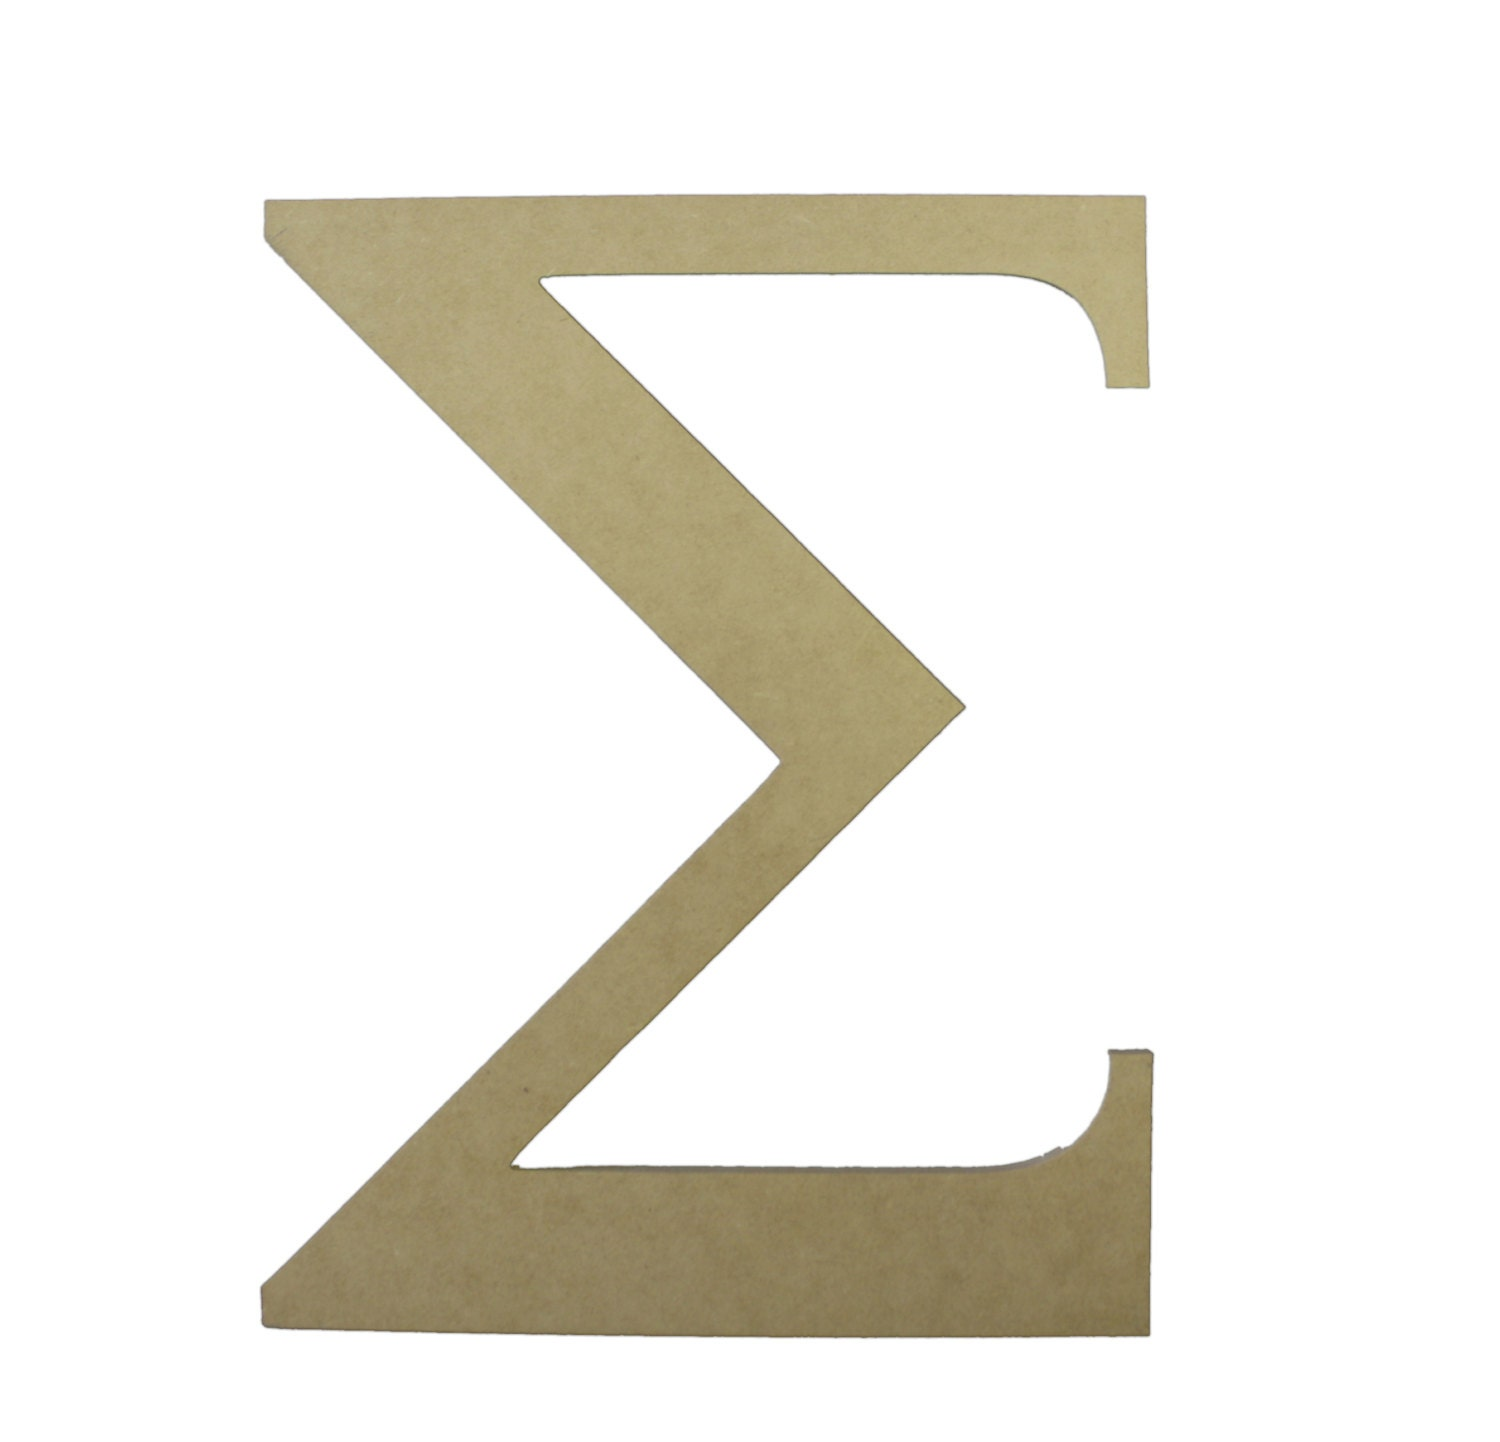 unavailable listing on etsy With greek letter cutouts